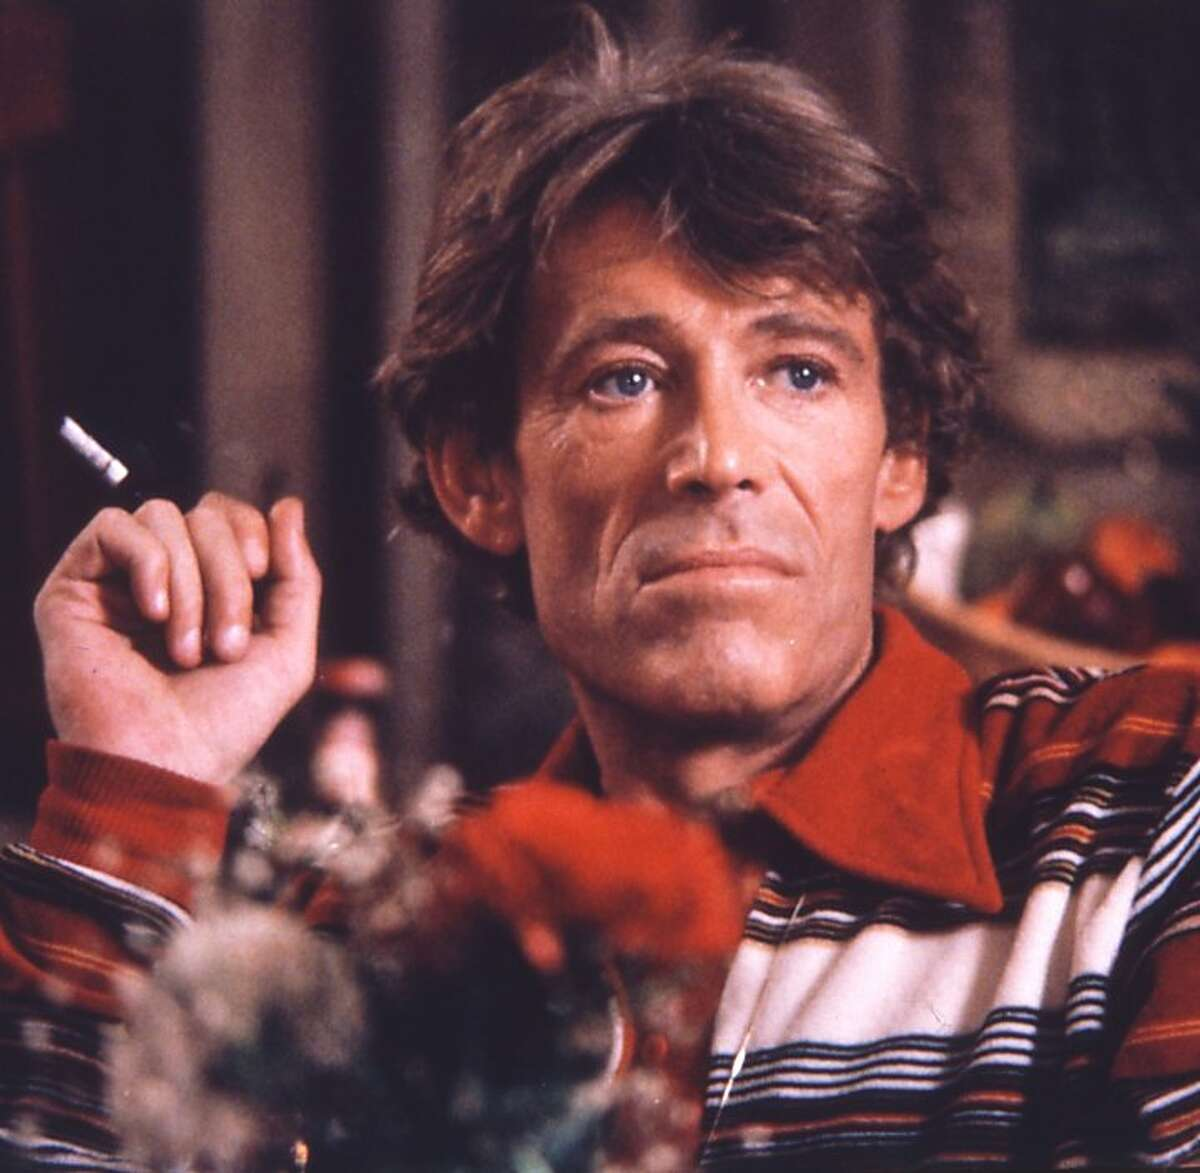 This 1980 file photo shows Peter O'Toole from the movie